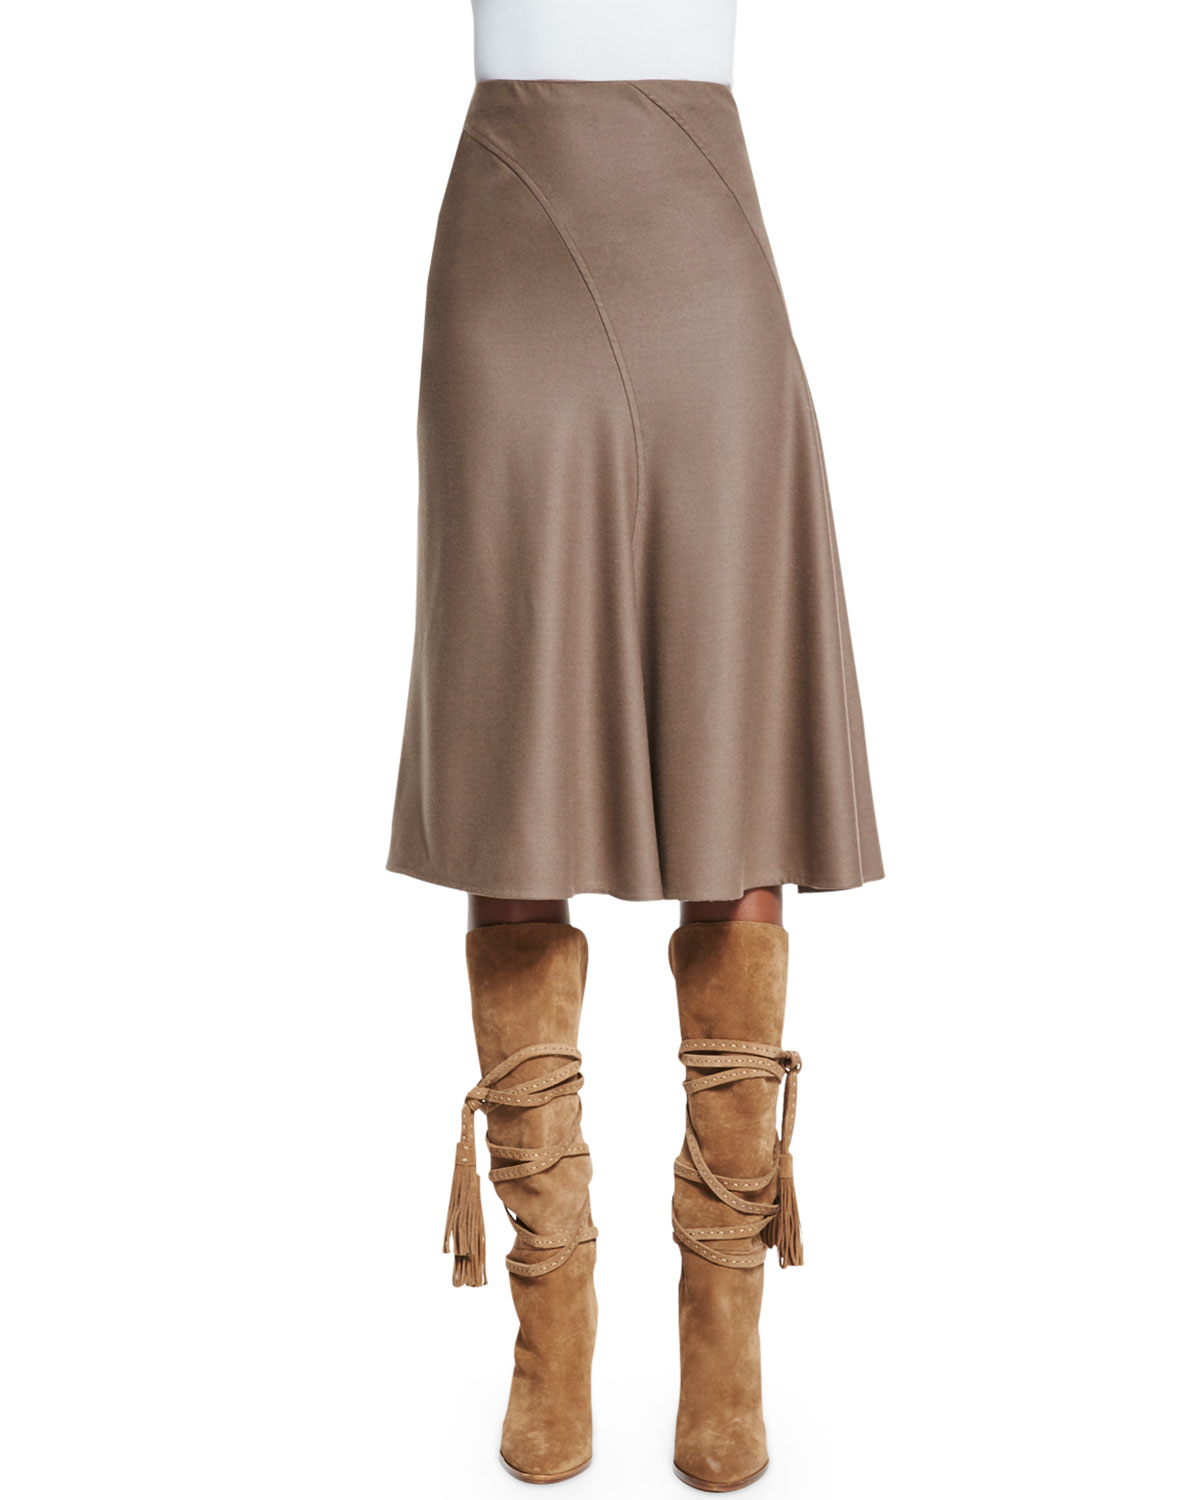 Pink pony A-line Bias-cut Skirt in Brown